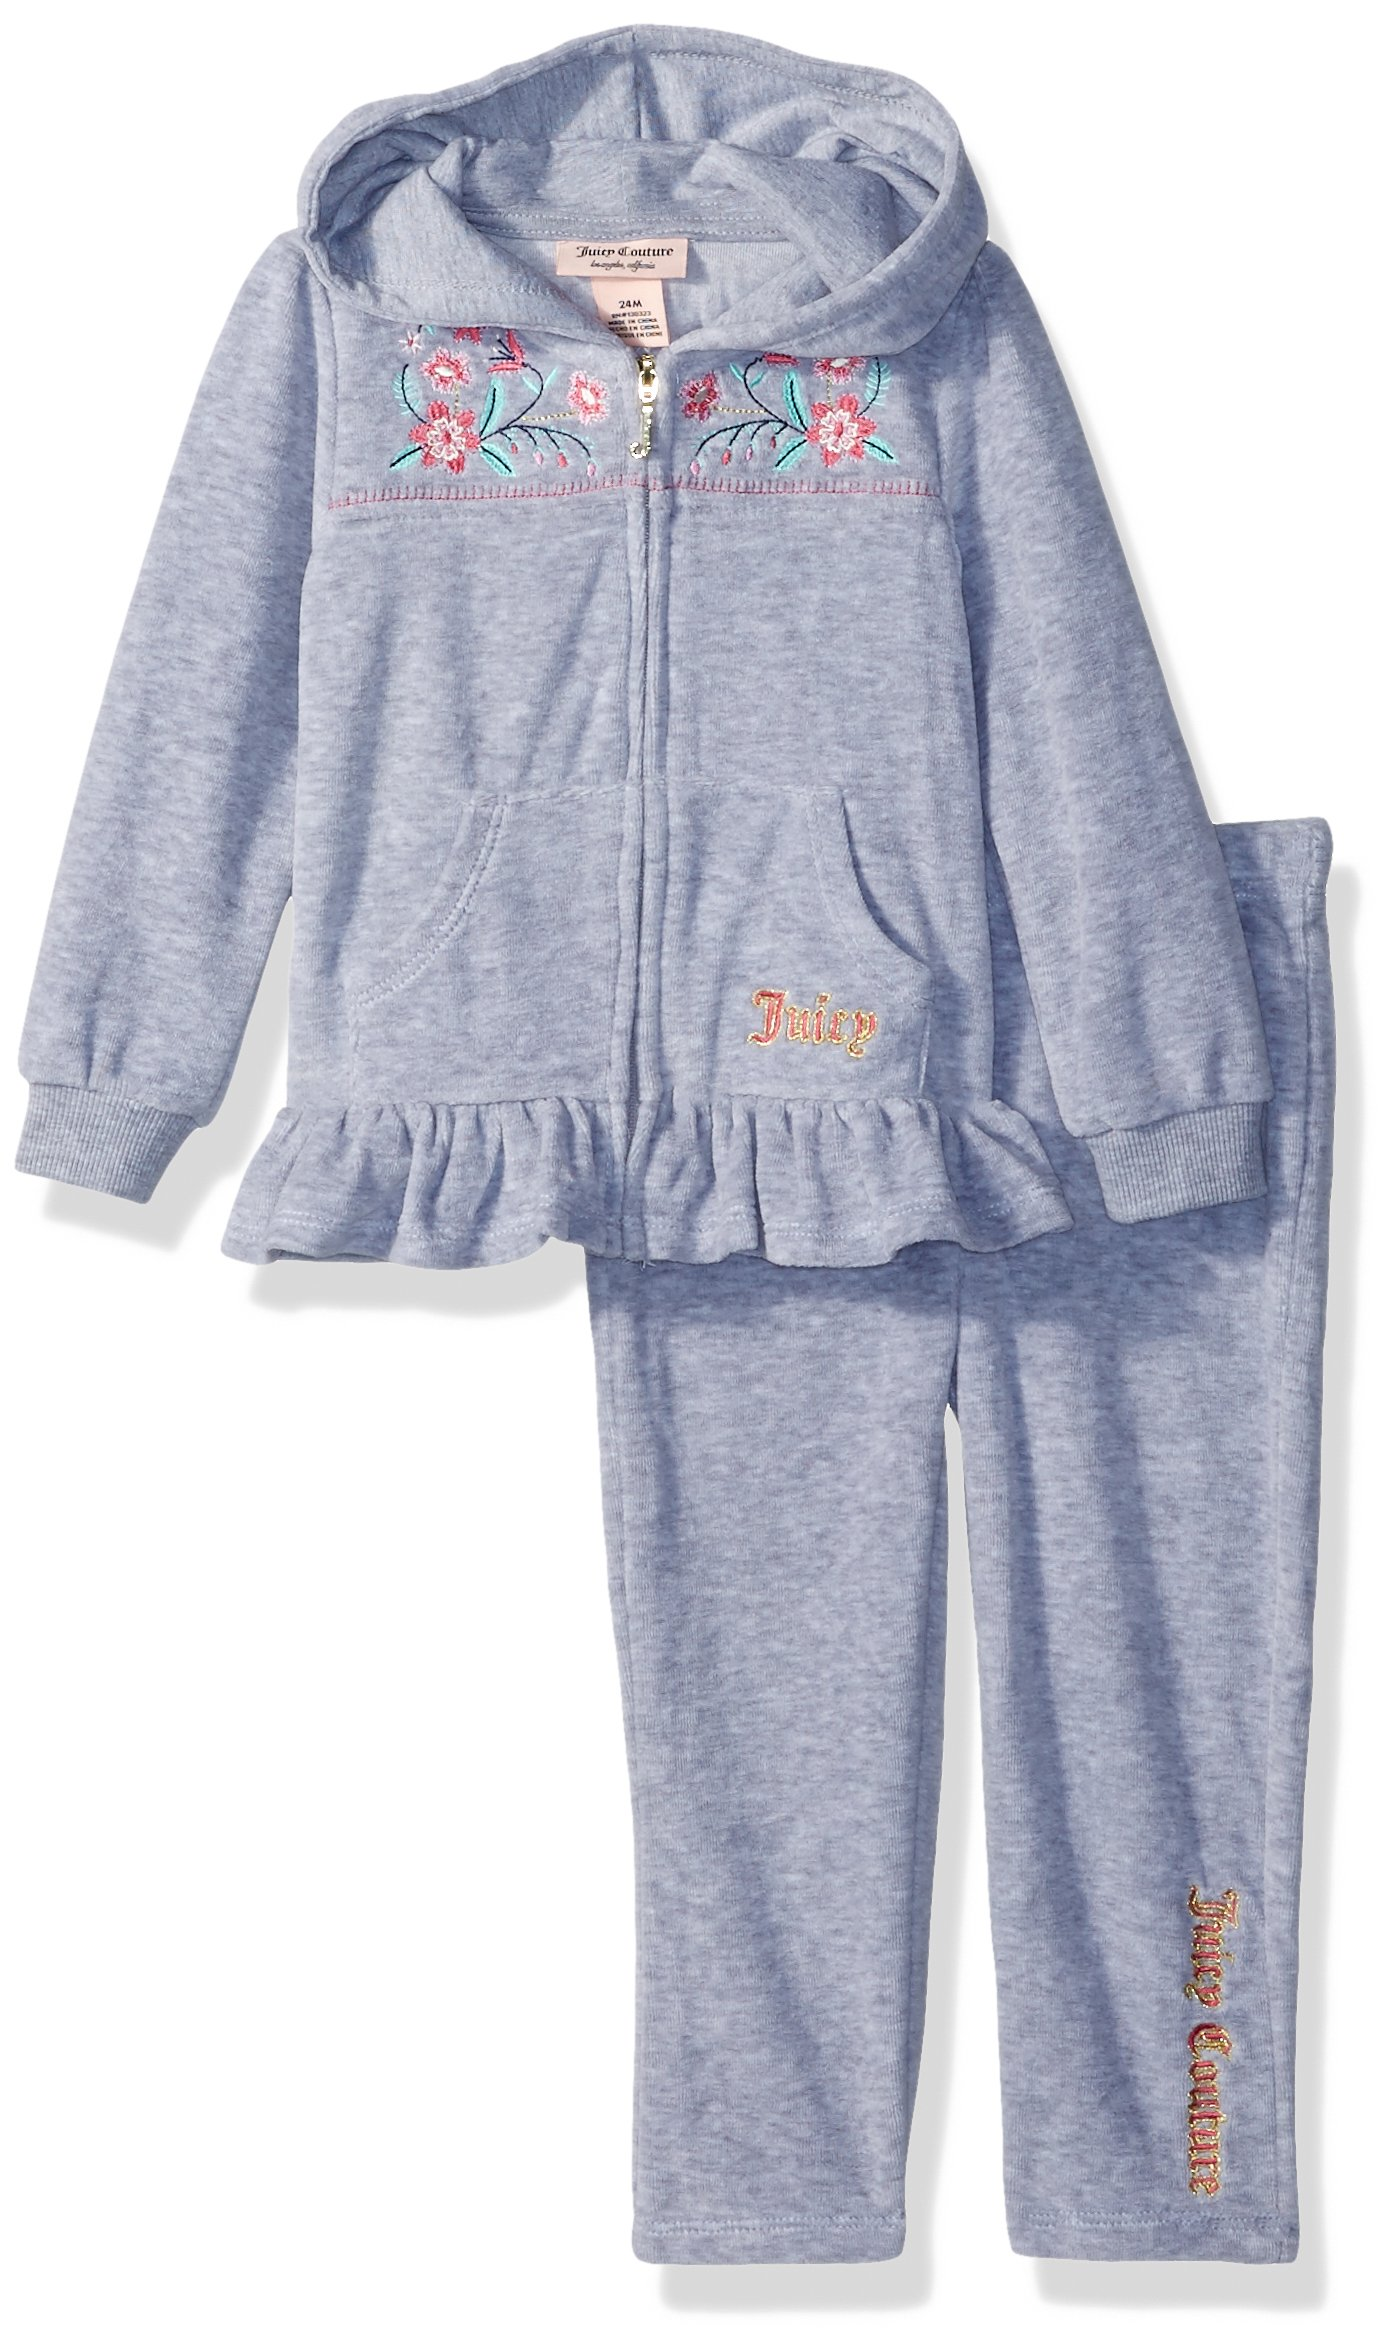 Juicy Couture Girls' 2 Piece Velour Pants Set, Grey Heather, 6-9 Months by Juicy Couture